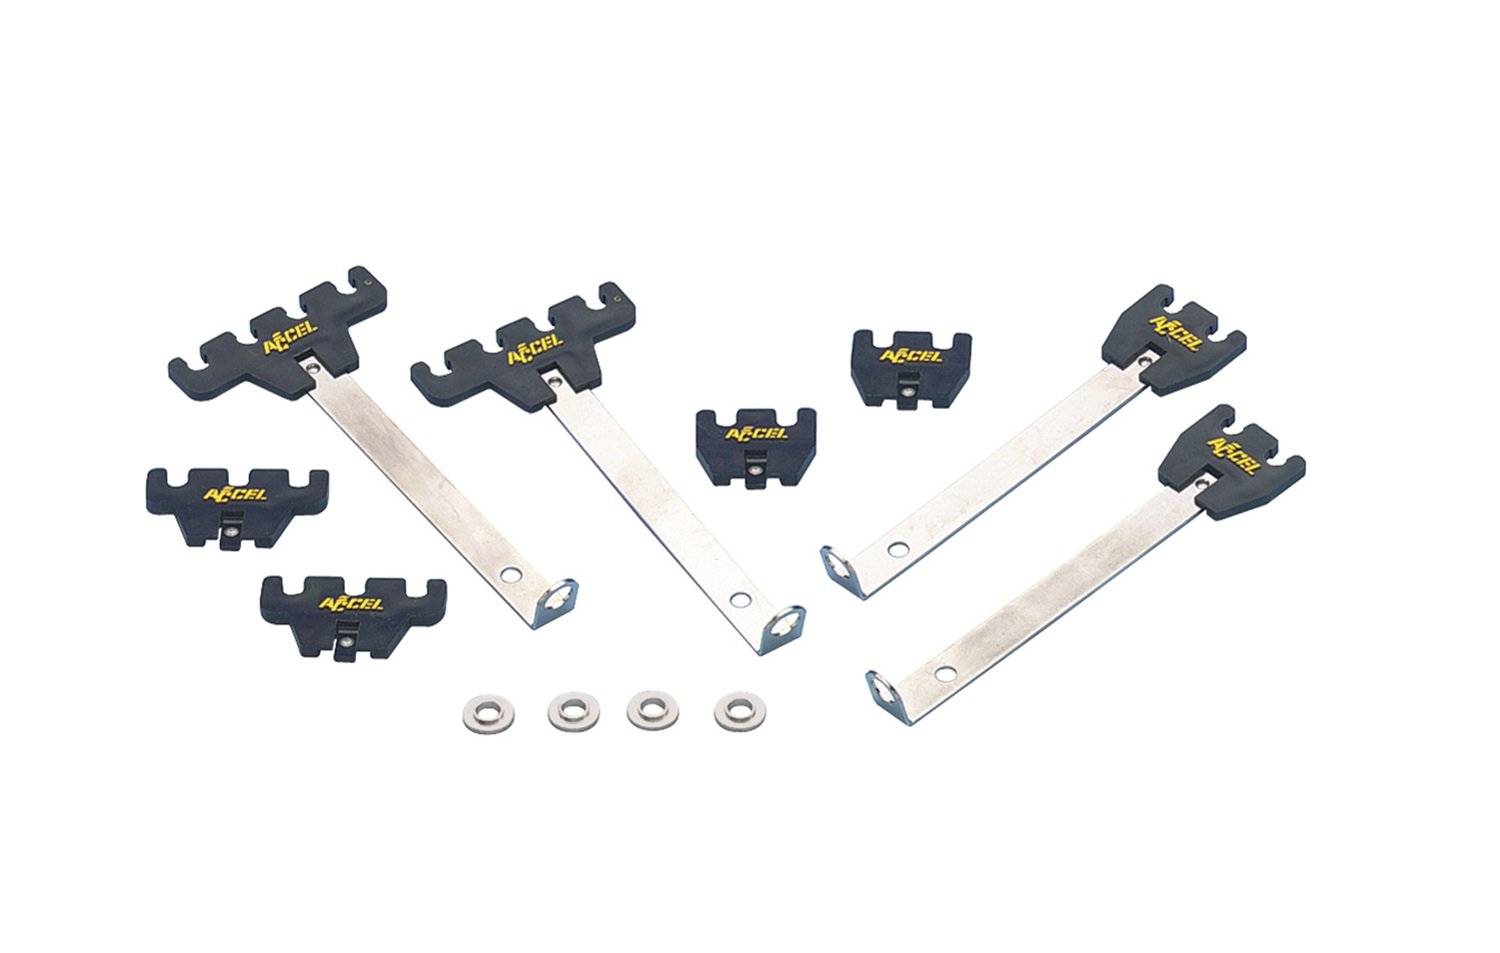 ACCEL 170056 Competition Wire Loom Kit